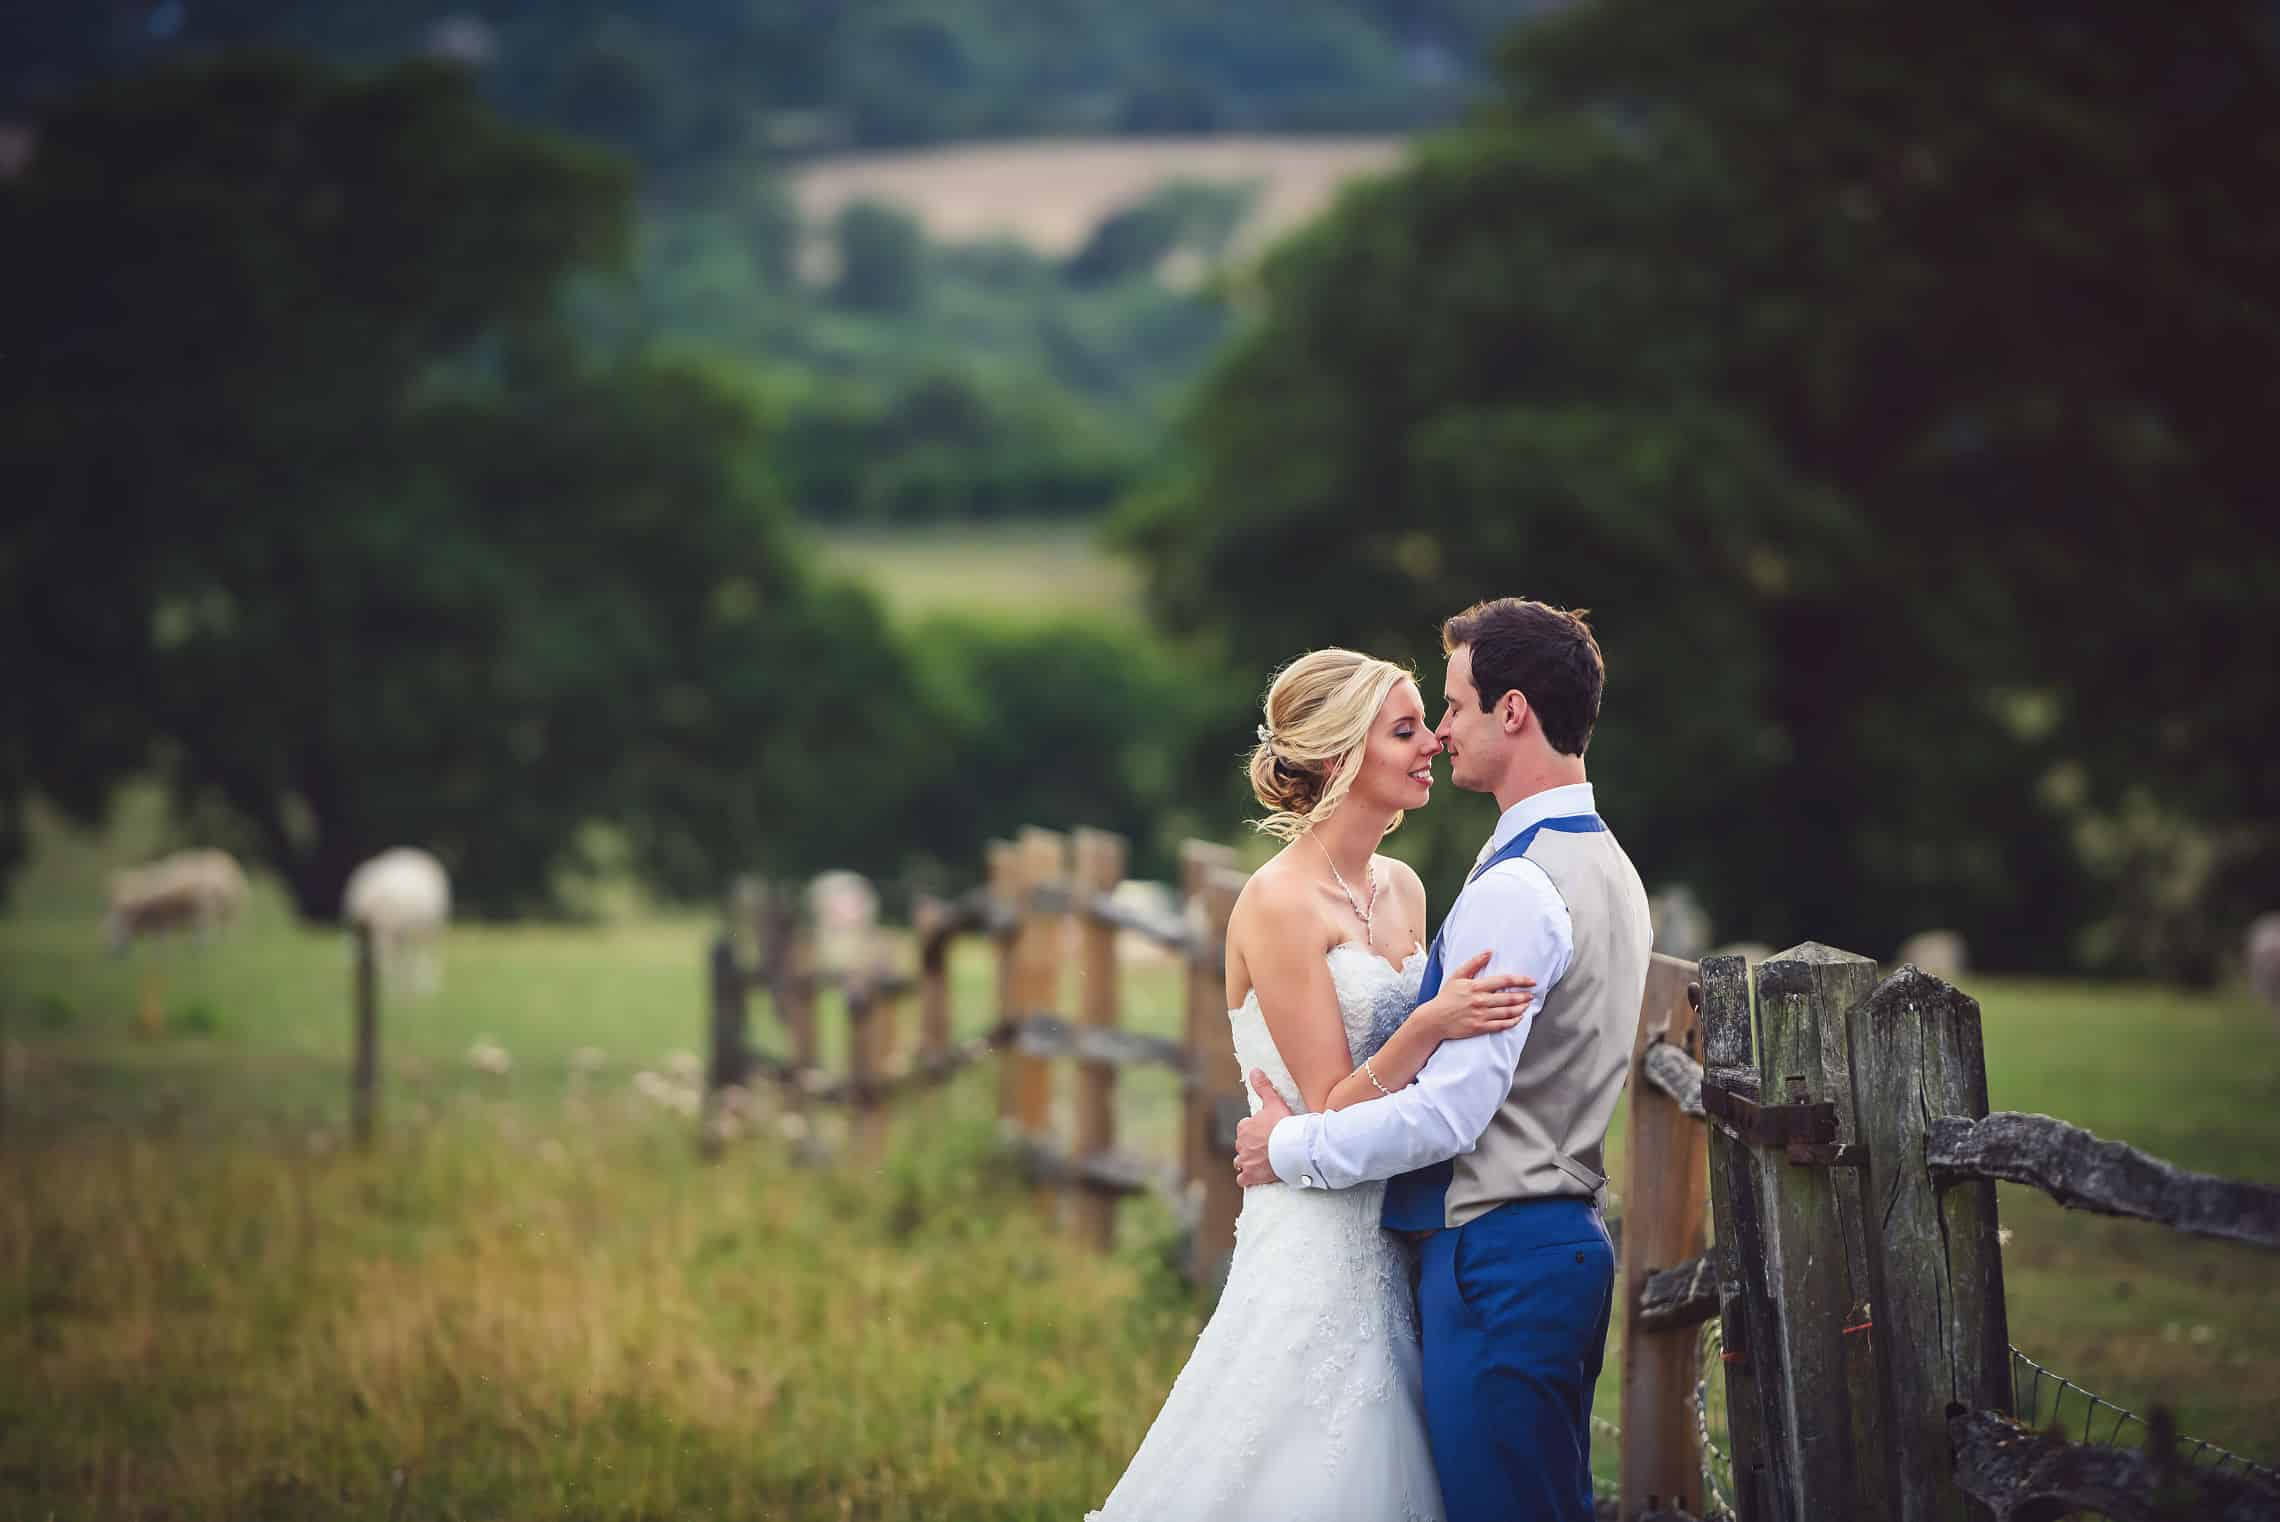 gaynes_park_wedding_lm_justin_bailey_photography_016